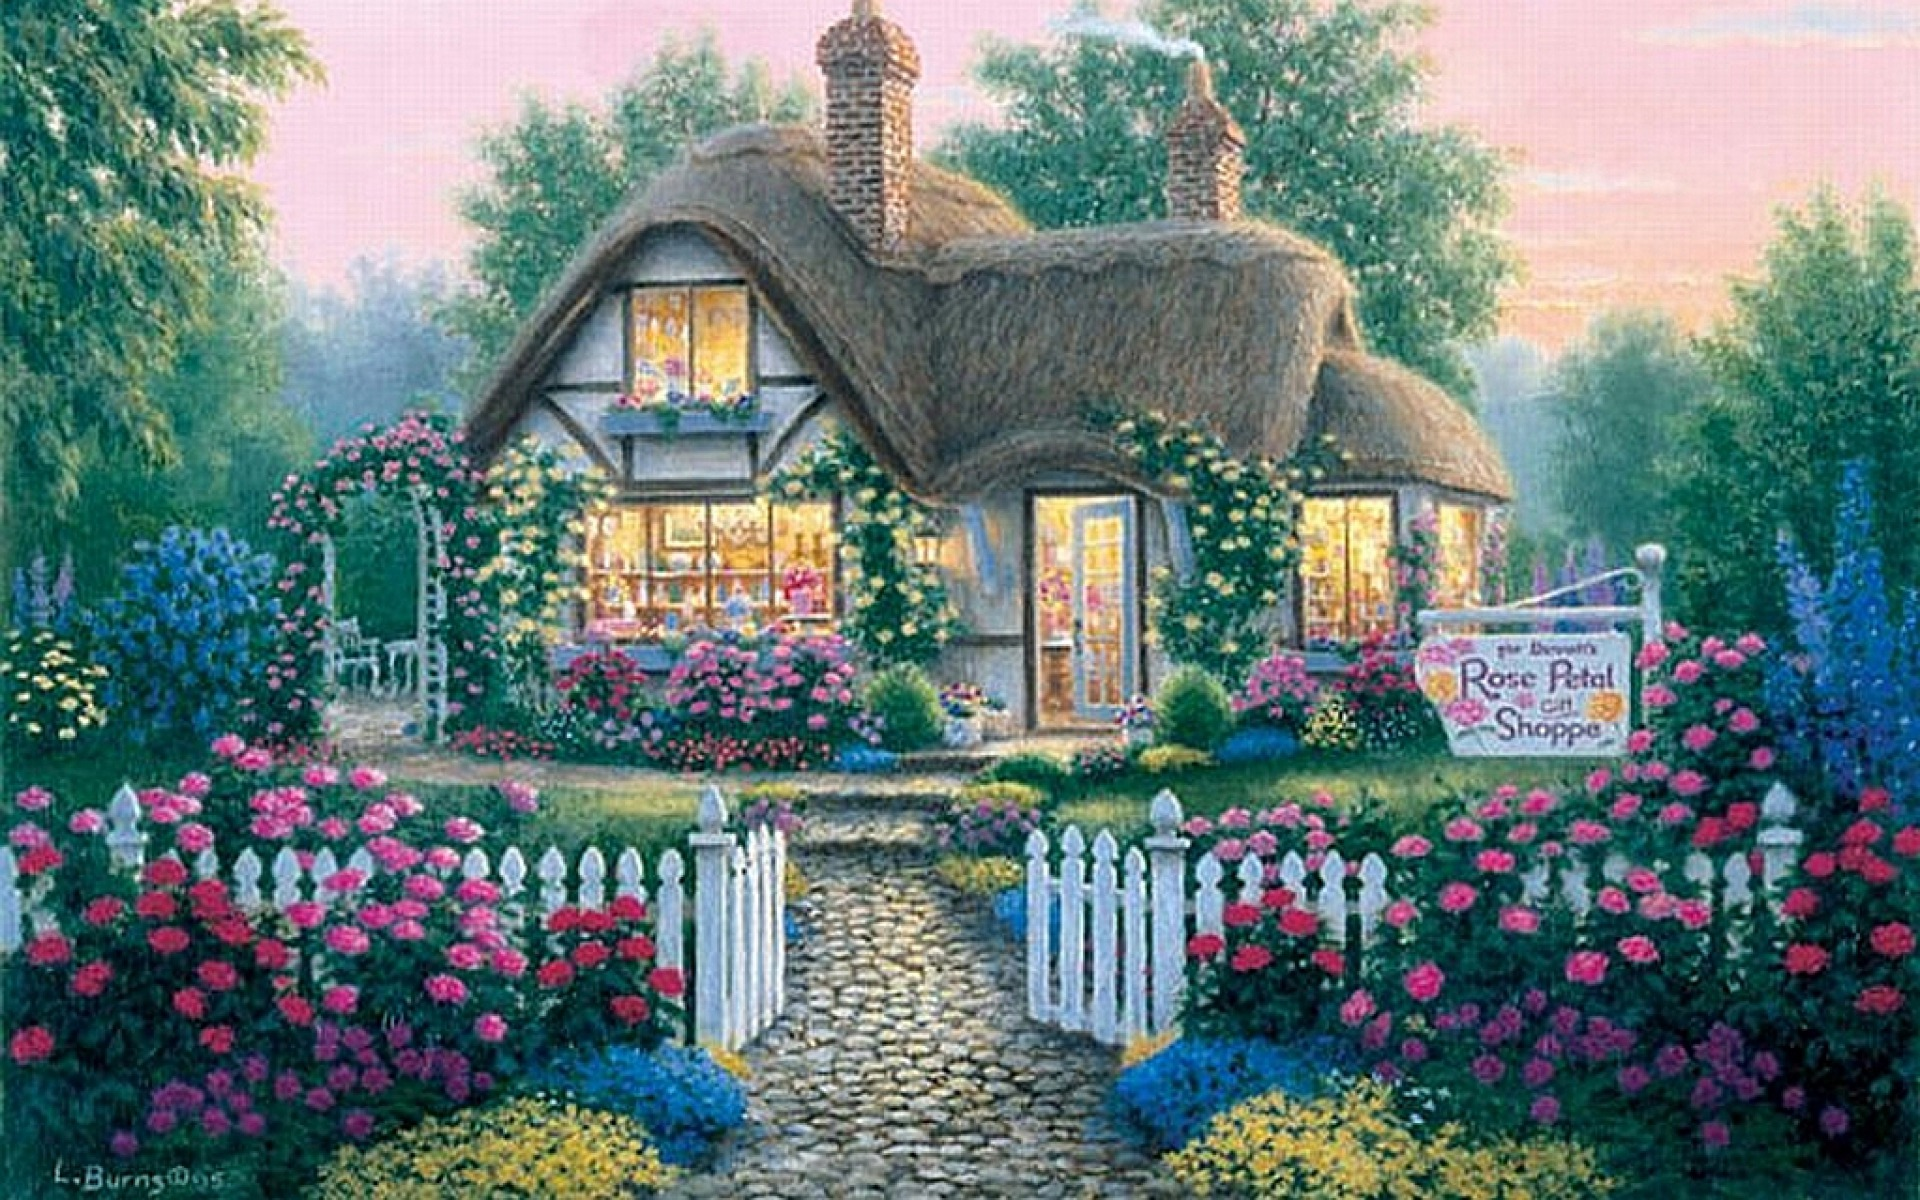 3d Wallpaper Colourful Rose Petal Cottage Wallpapers Rose Petal Cottage Stock